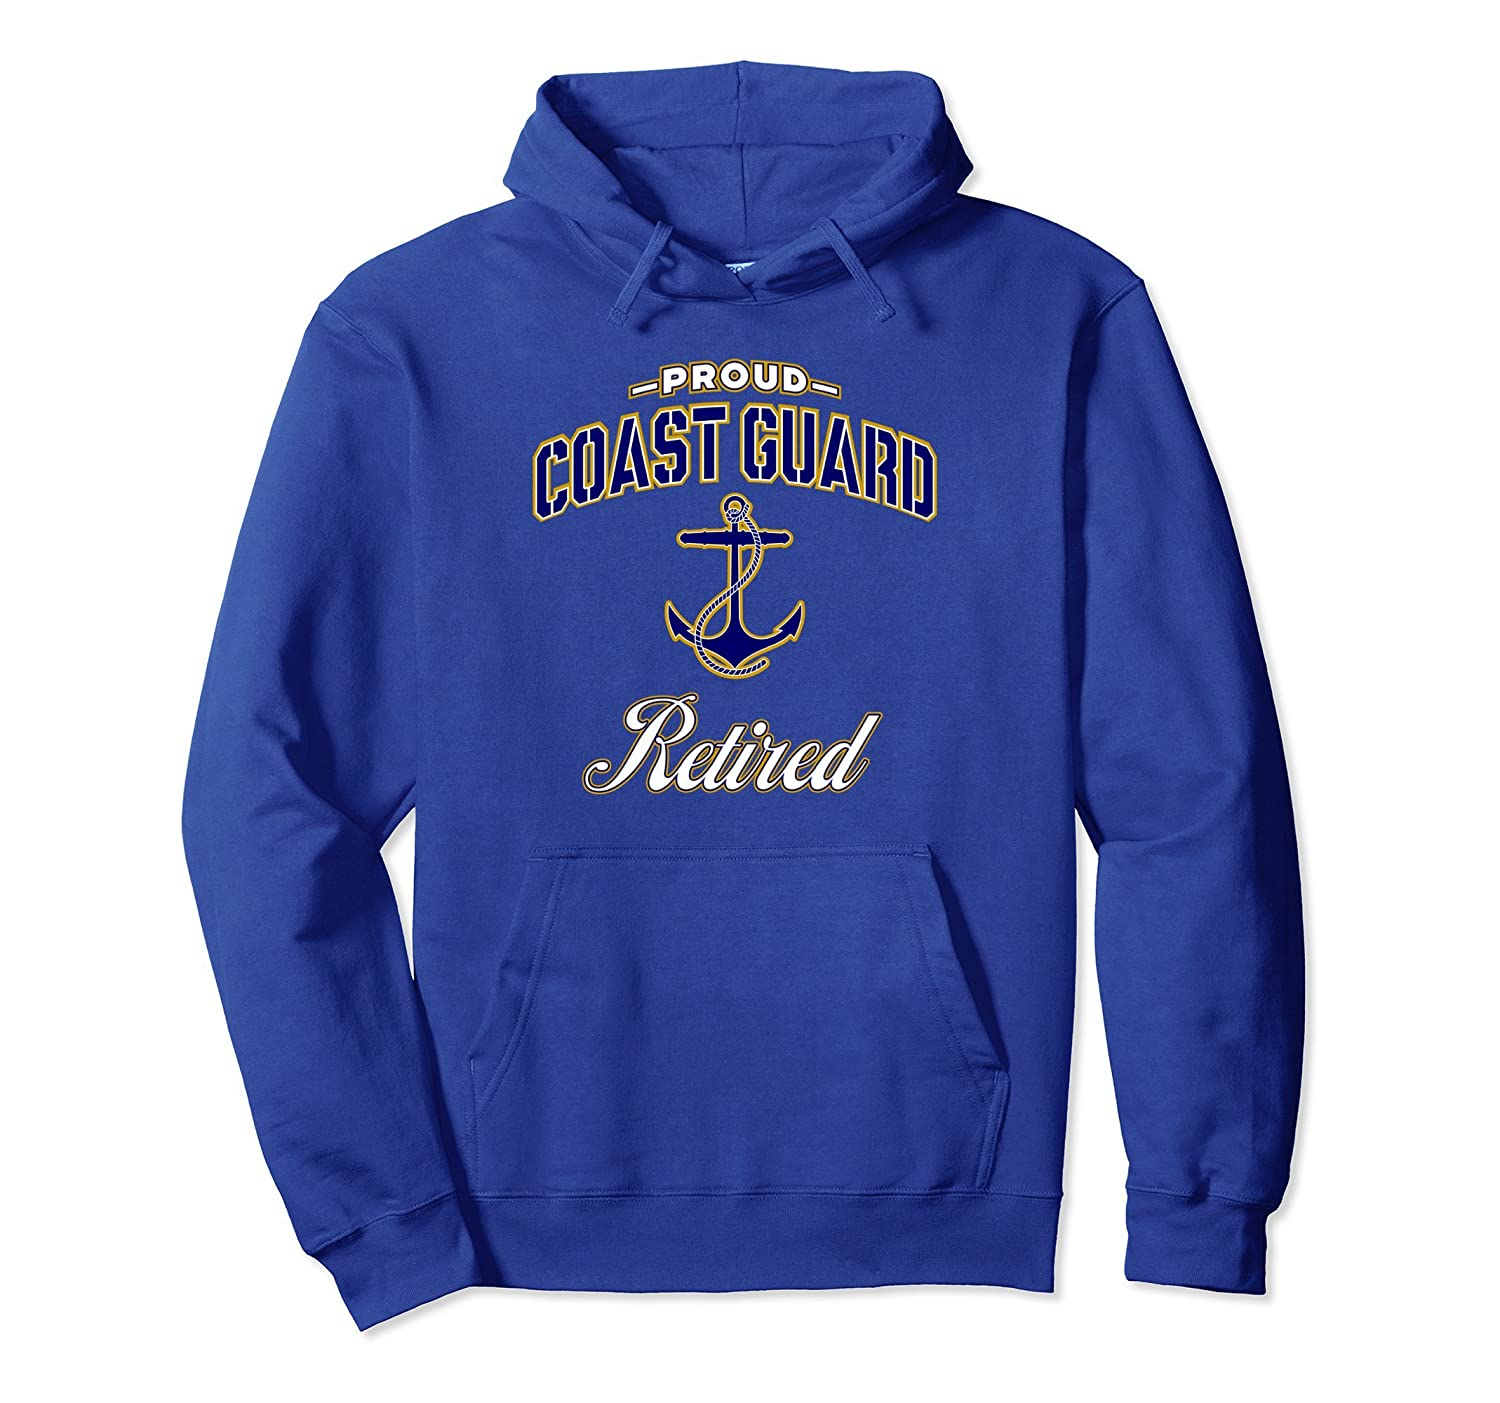 Coast Guard Retired Hoodie for Men and Women-alottee gift